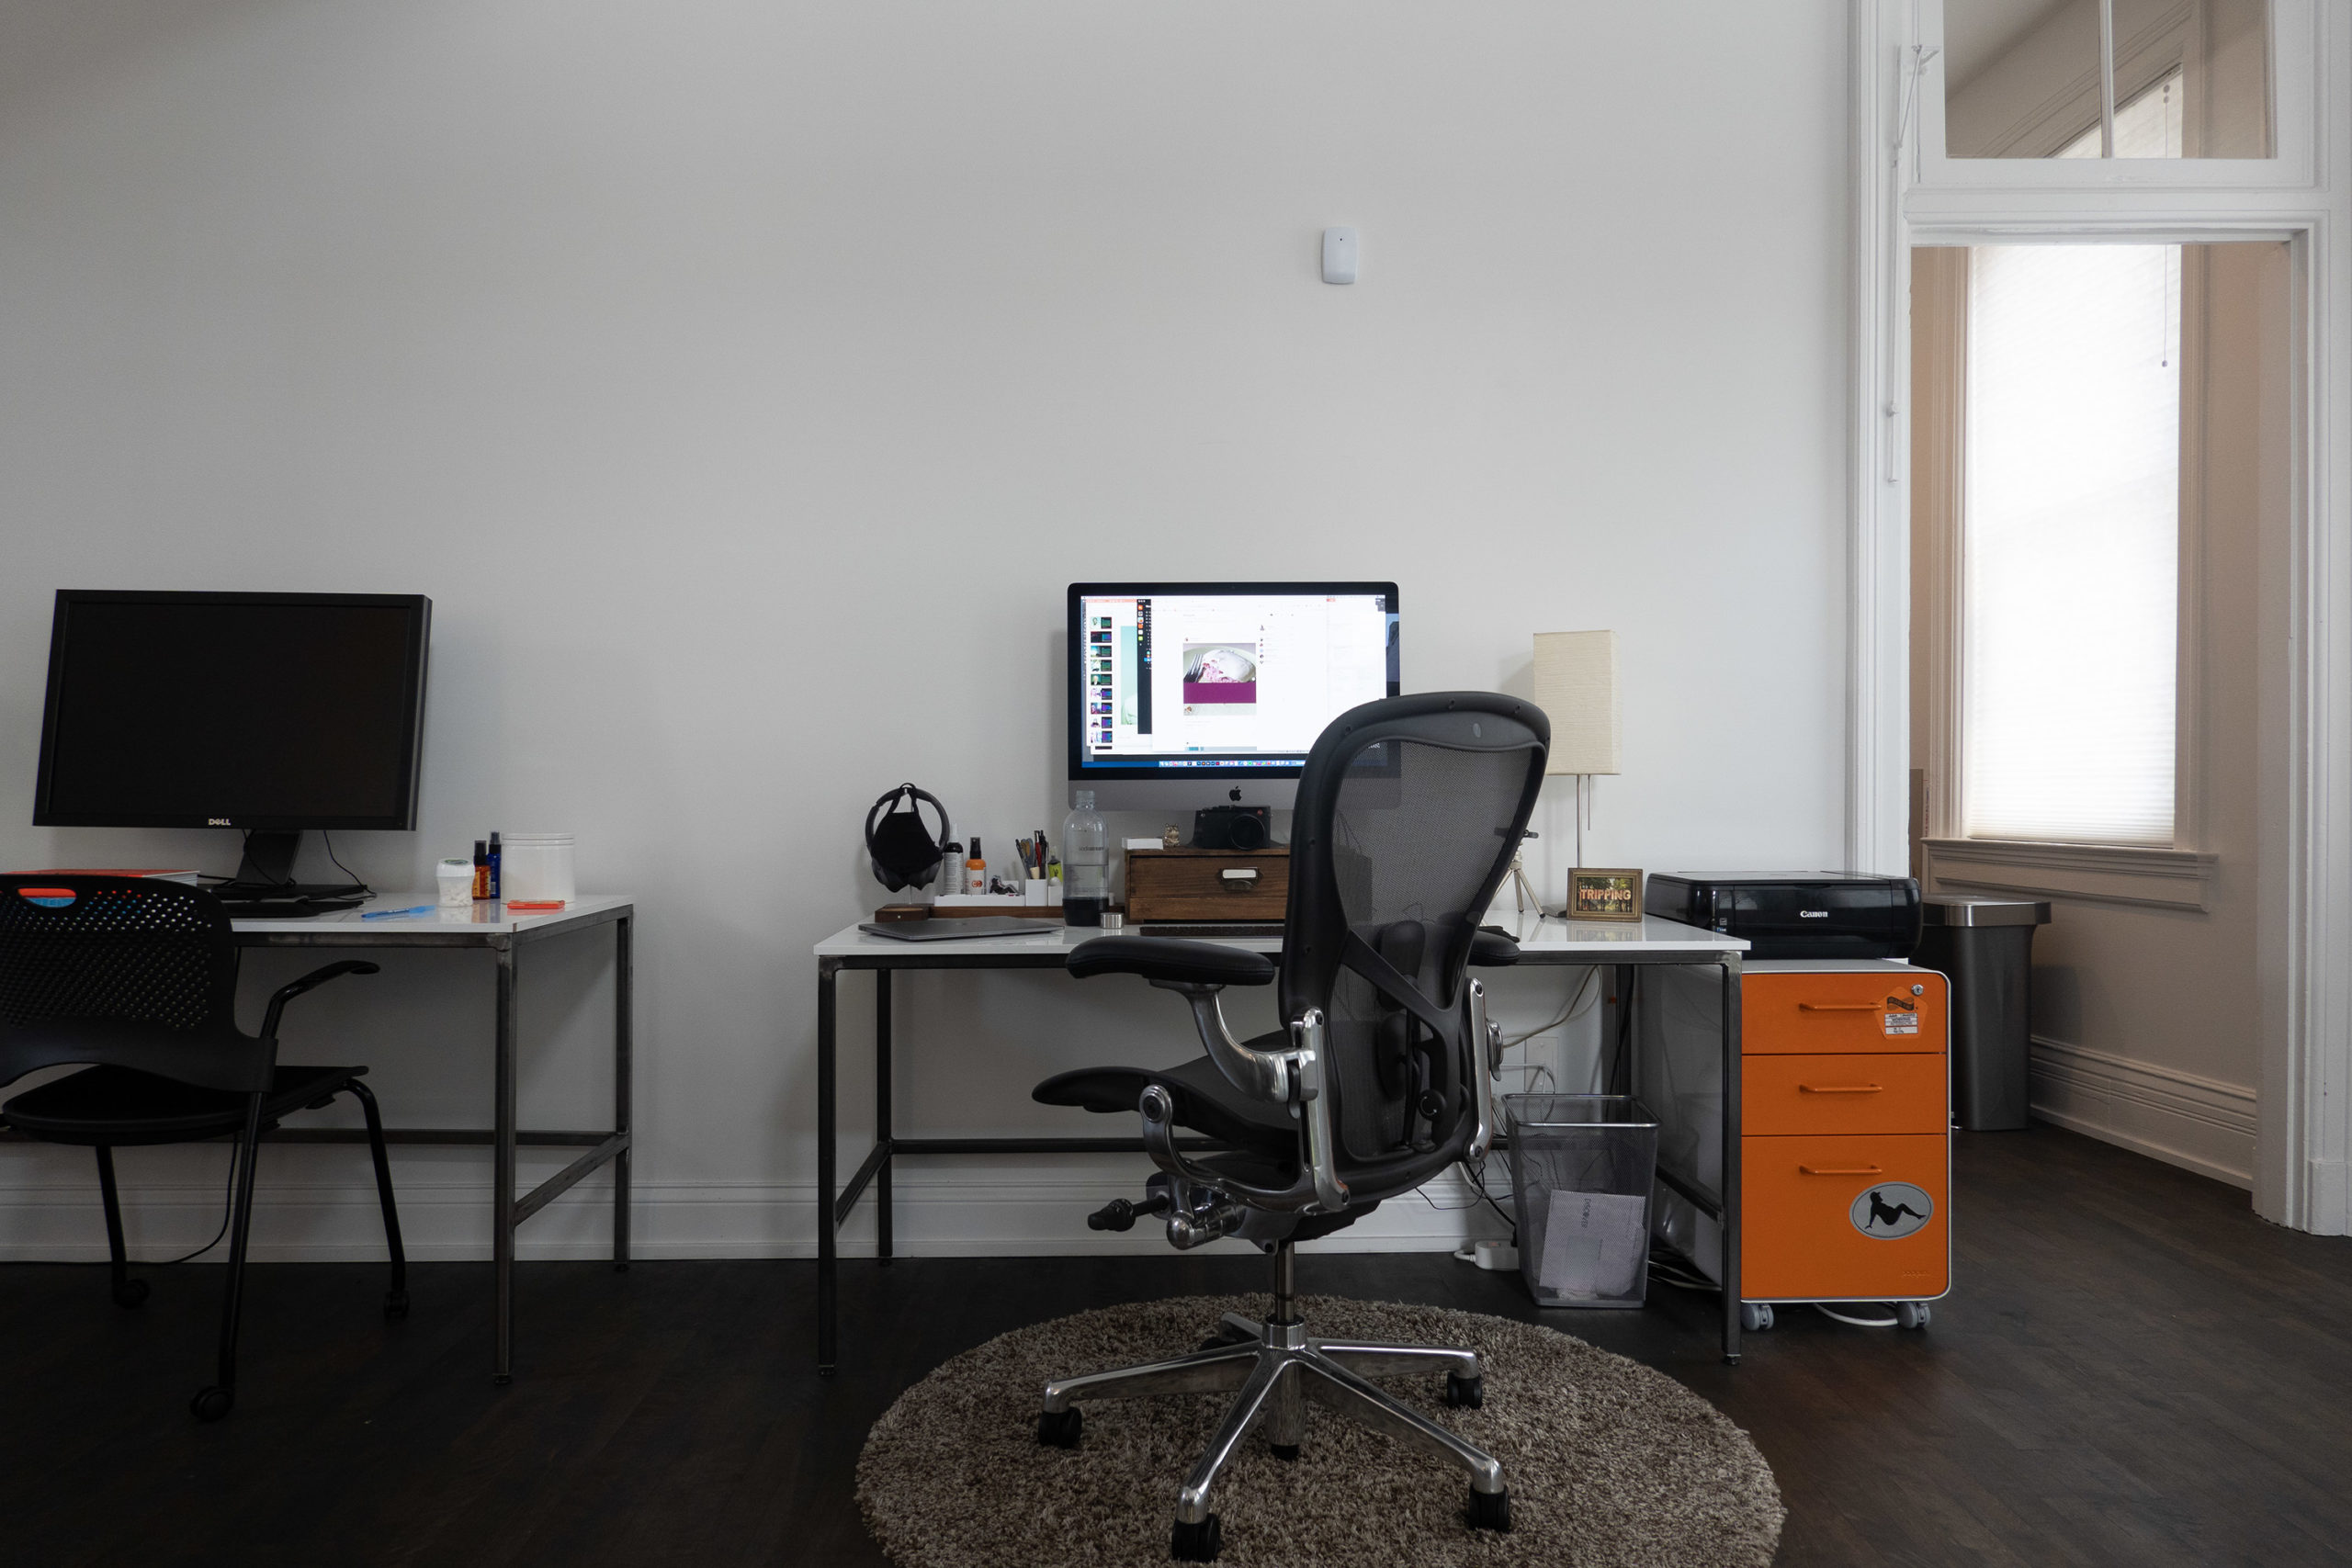 A desk with a computer and an orange filing cabinet off to the right